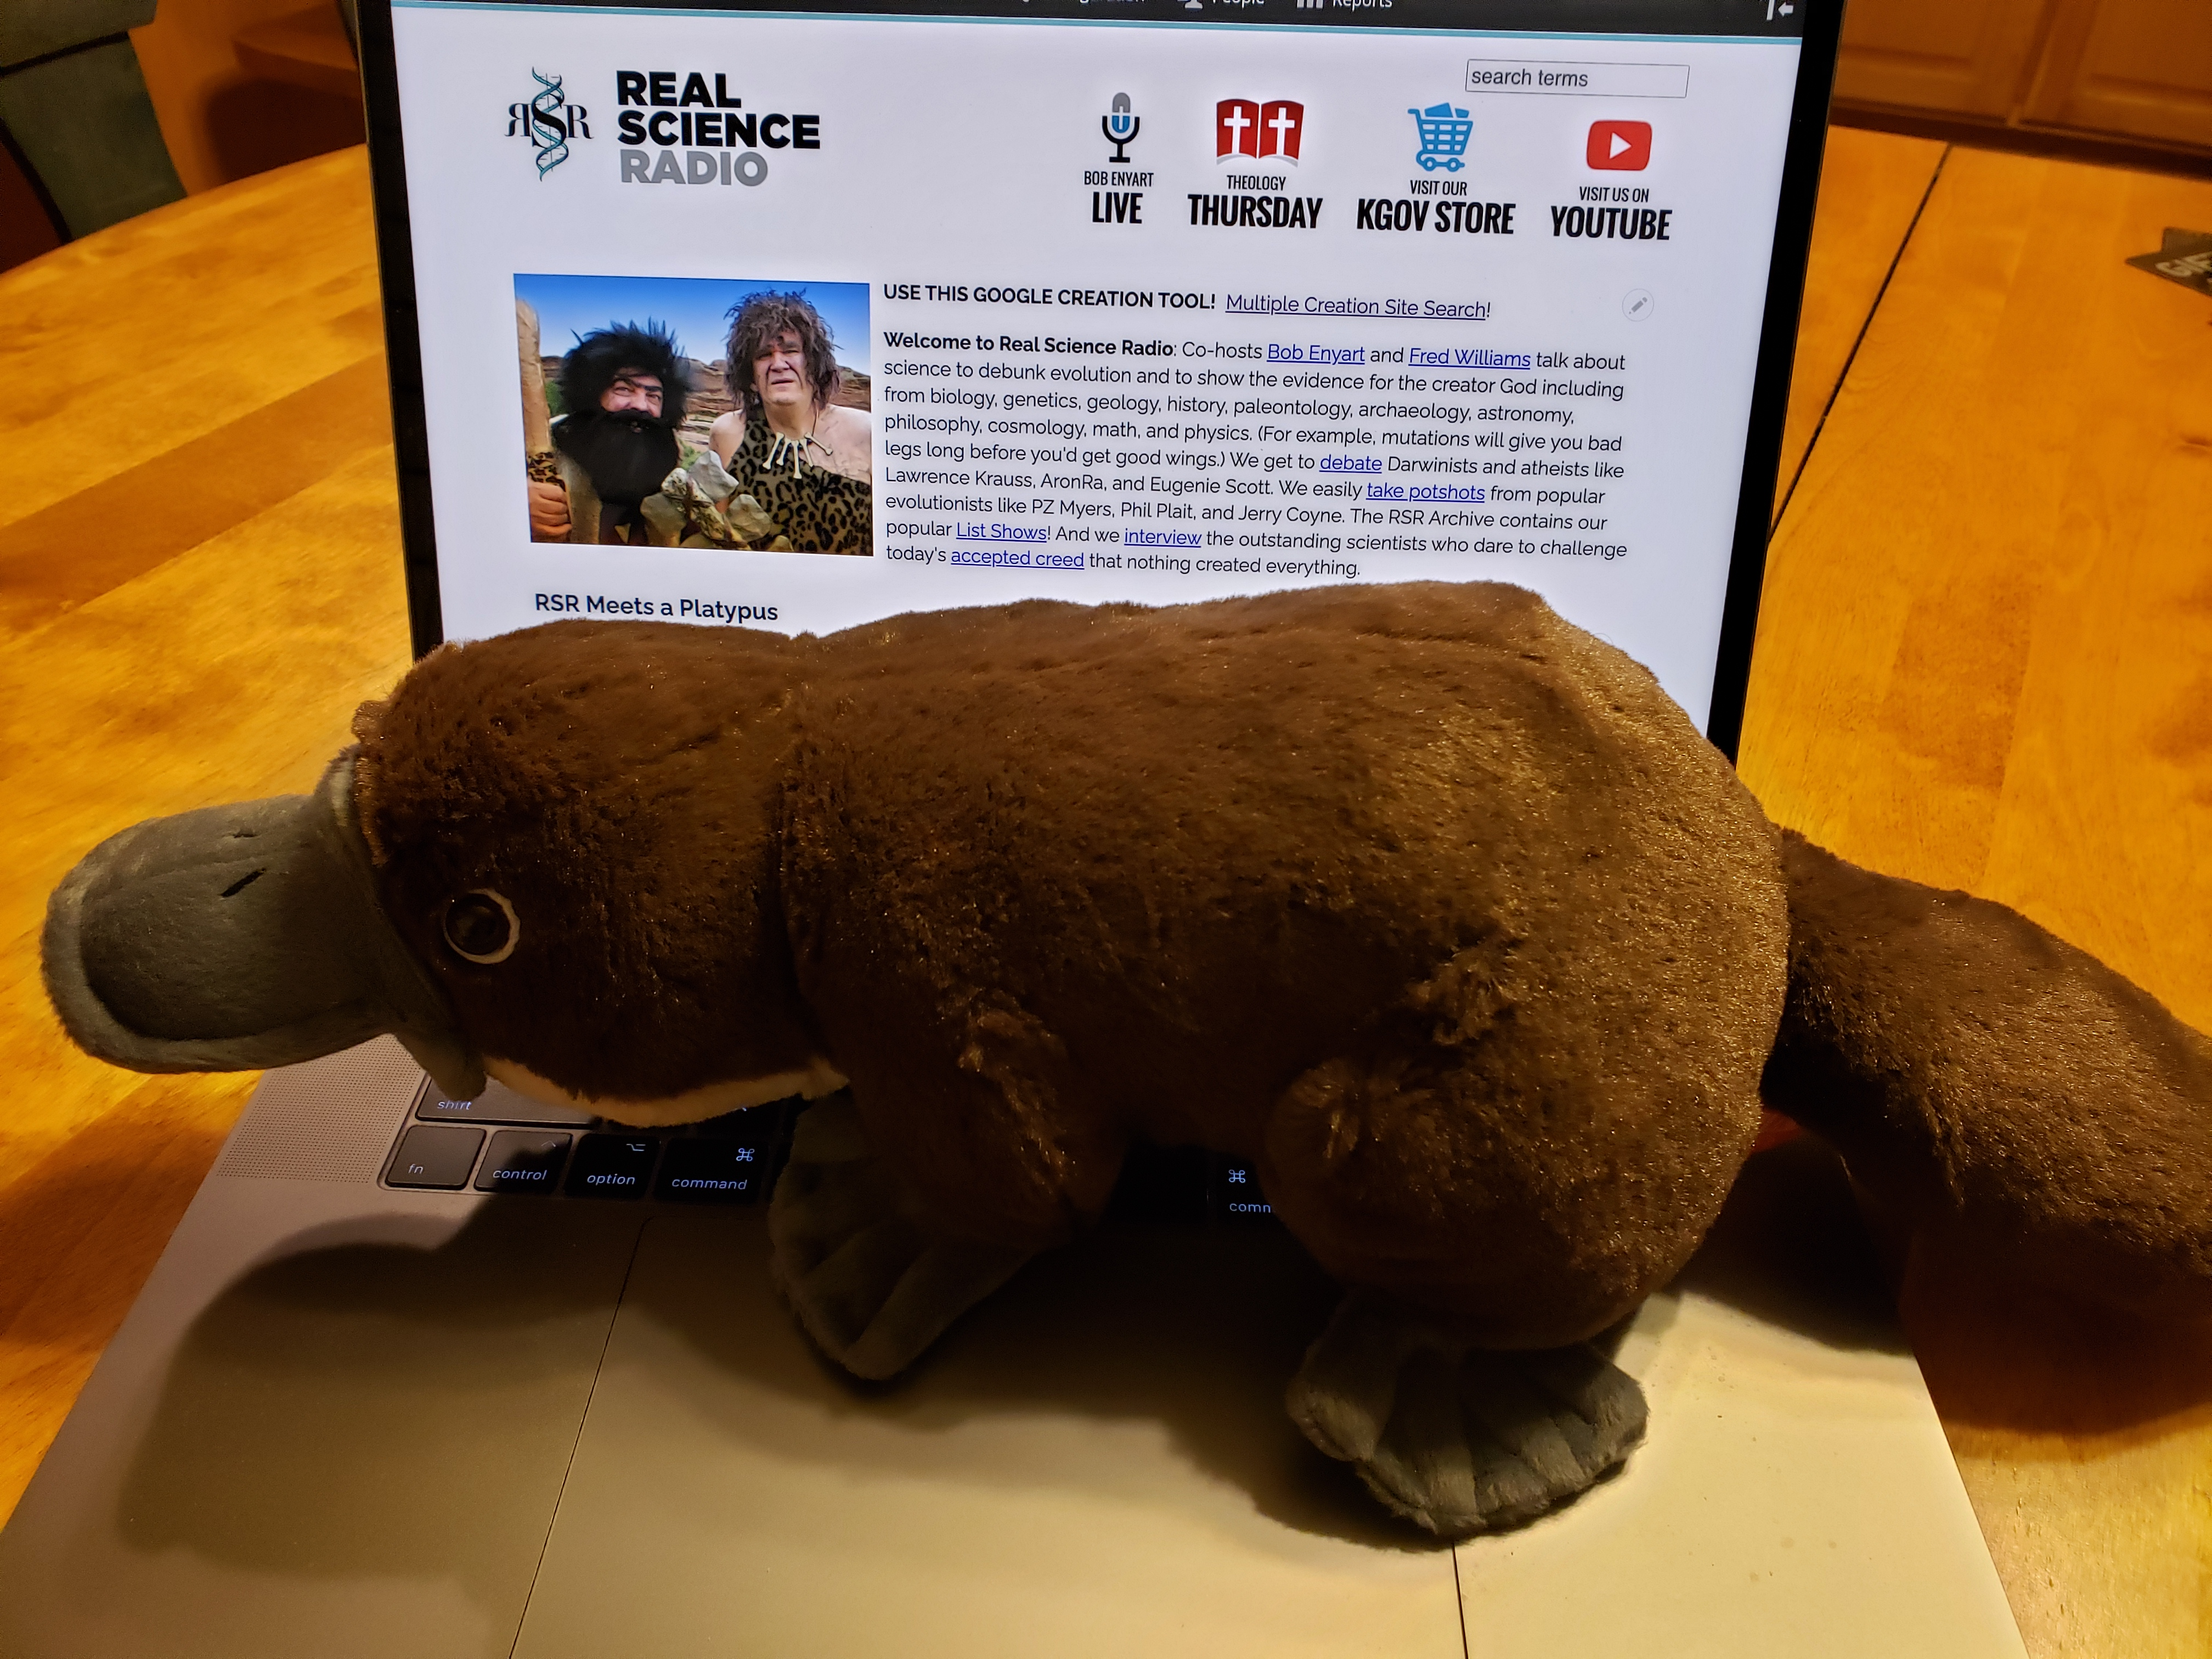 Now the platypus is in the RSR break room!  :)